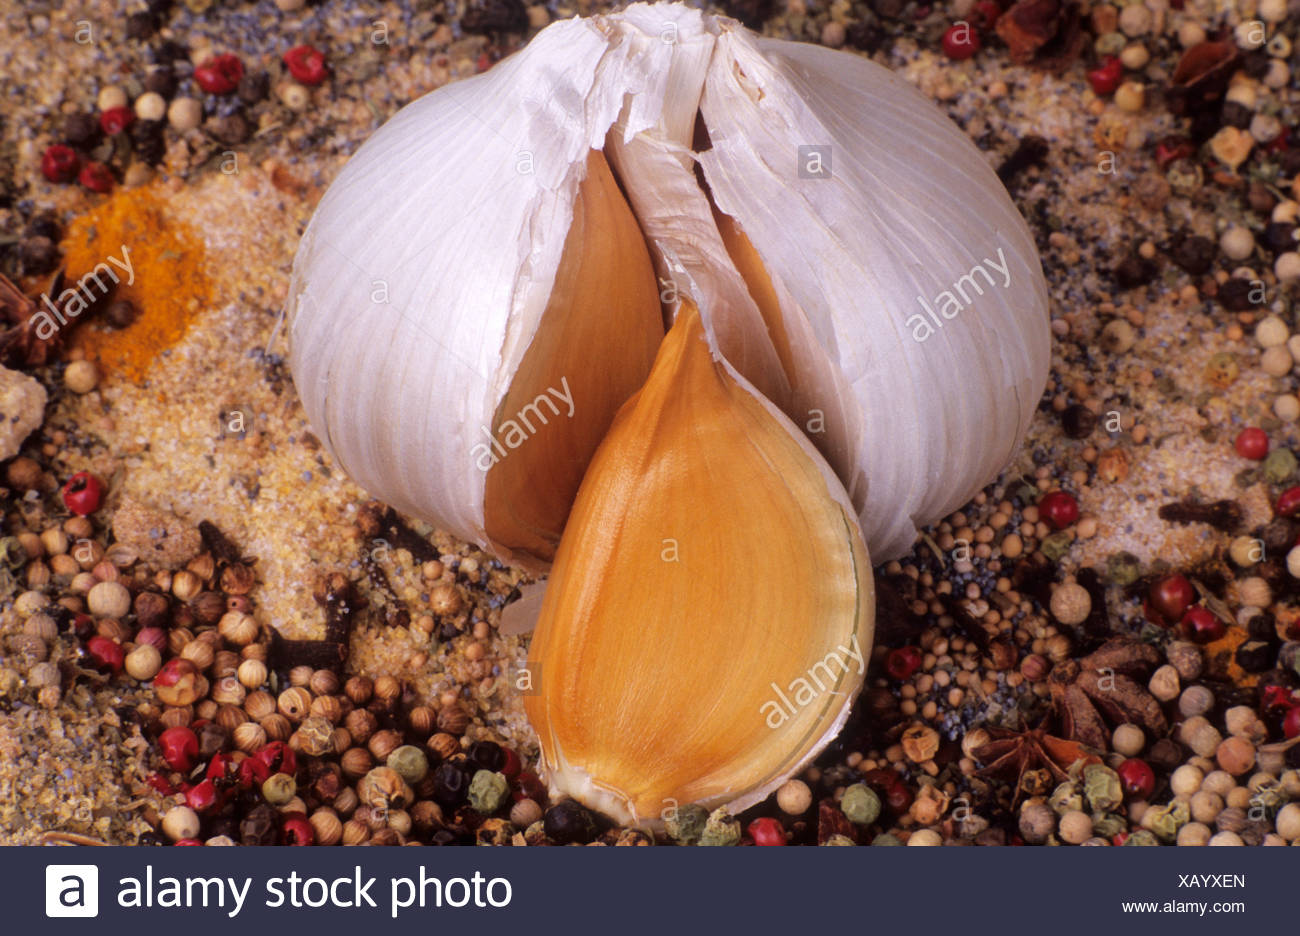 Garlic, Elephant Garlic with Spices - Stock Image